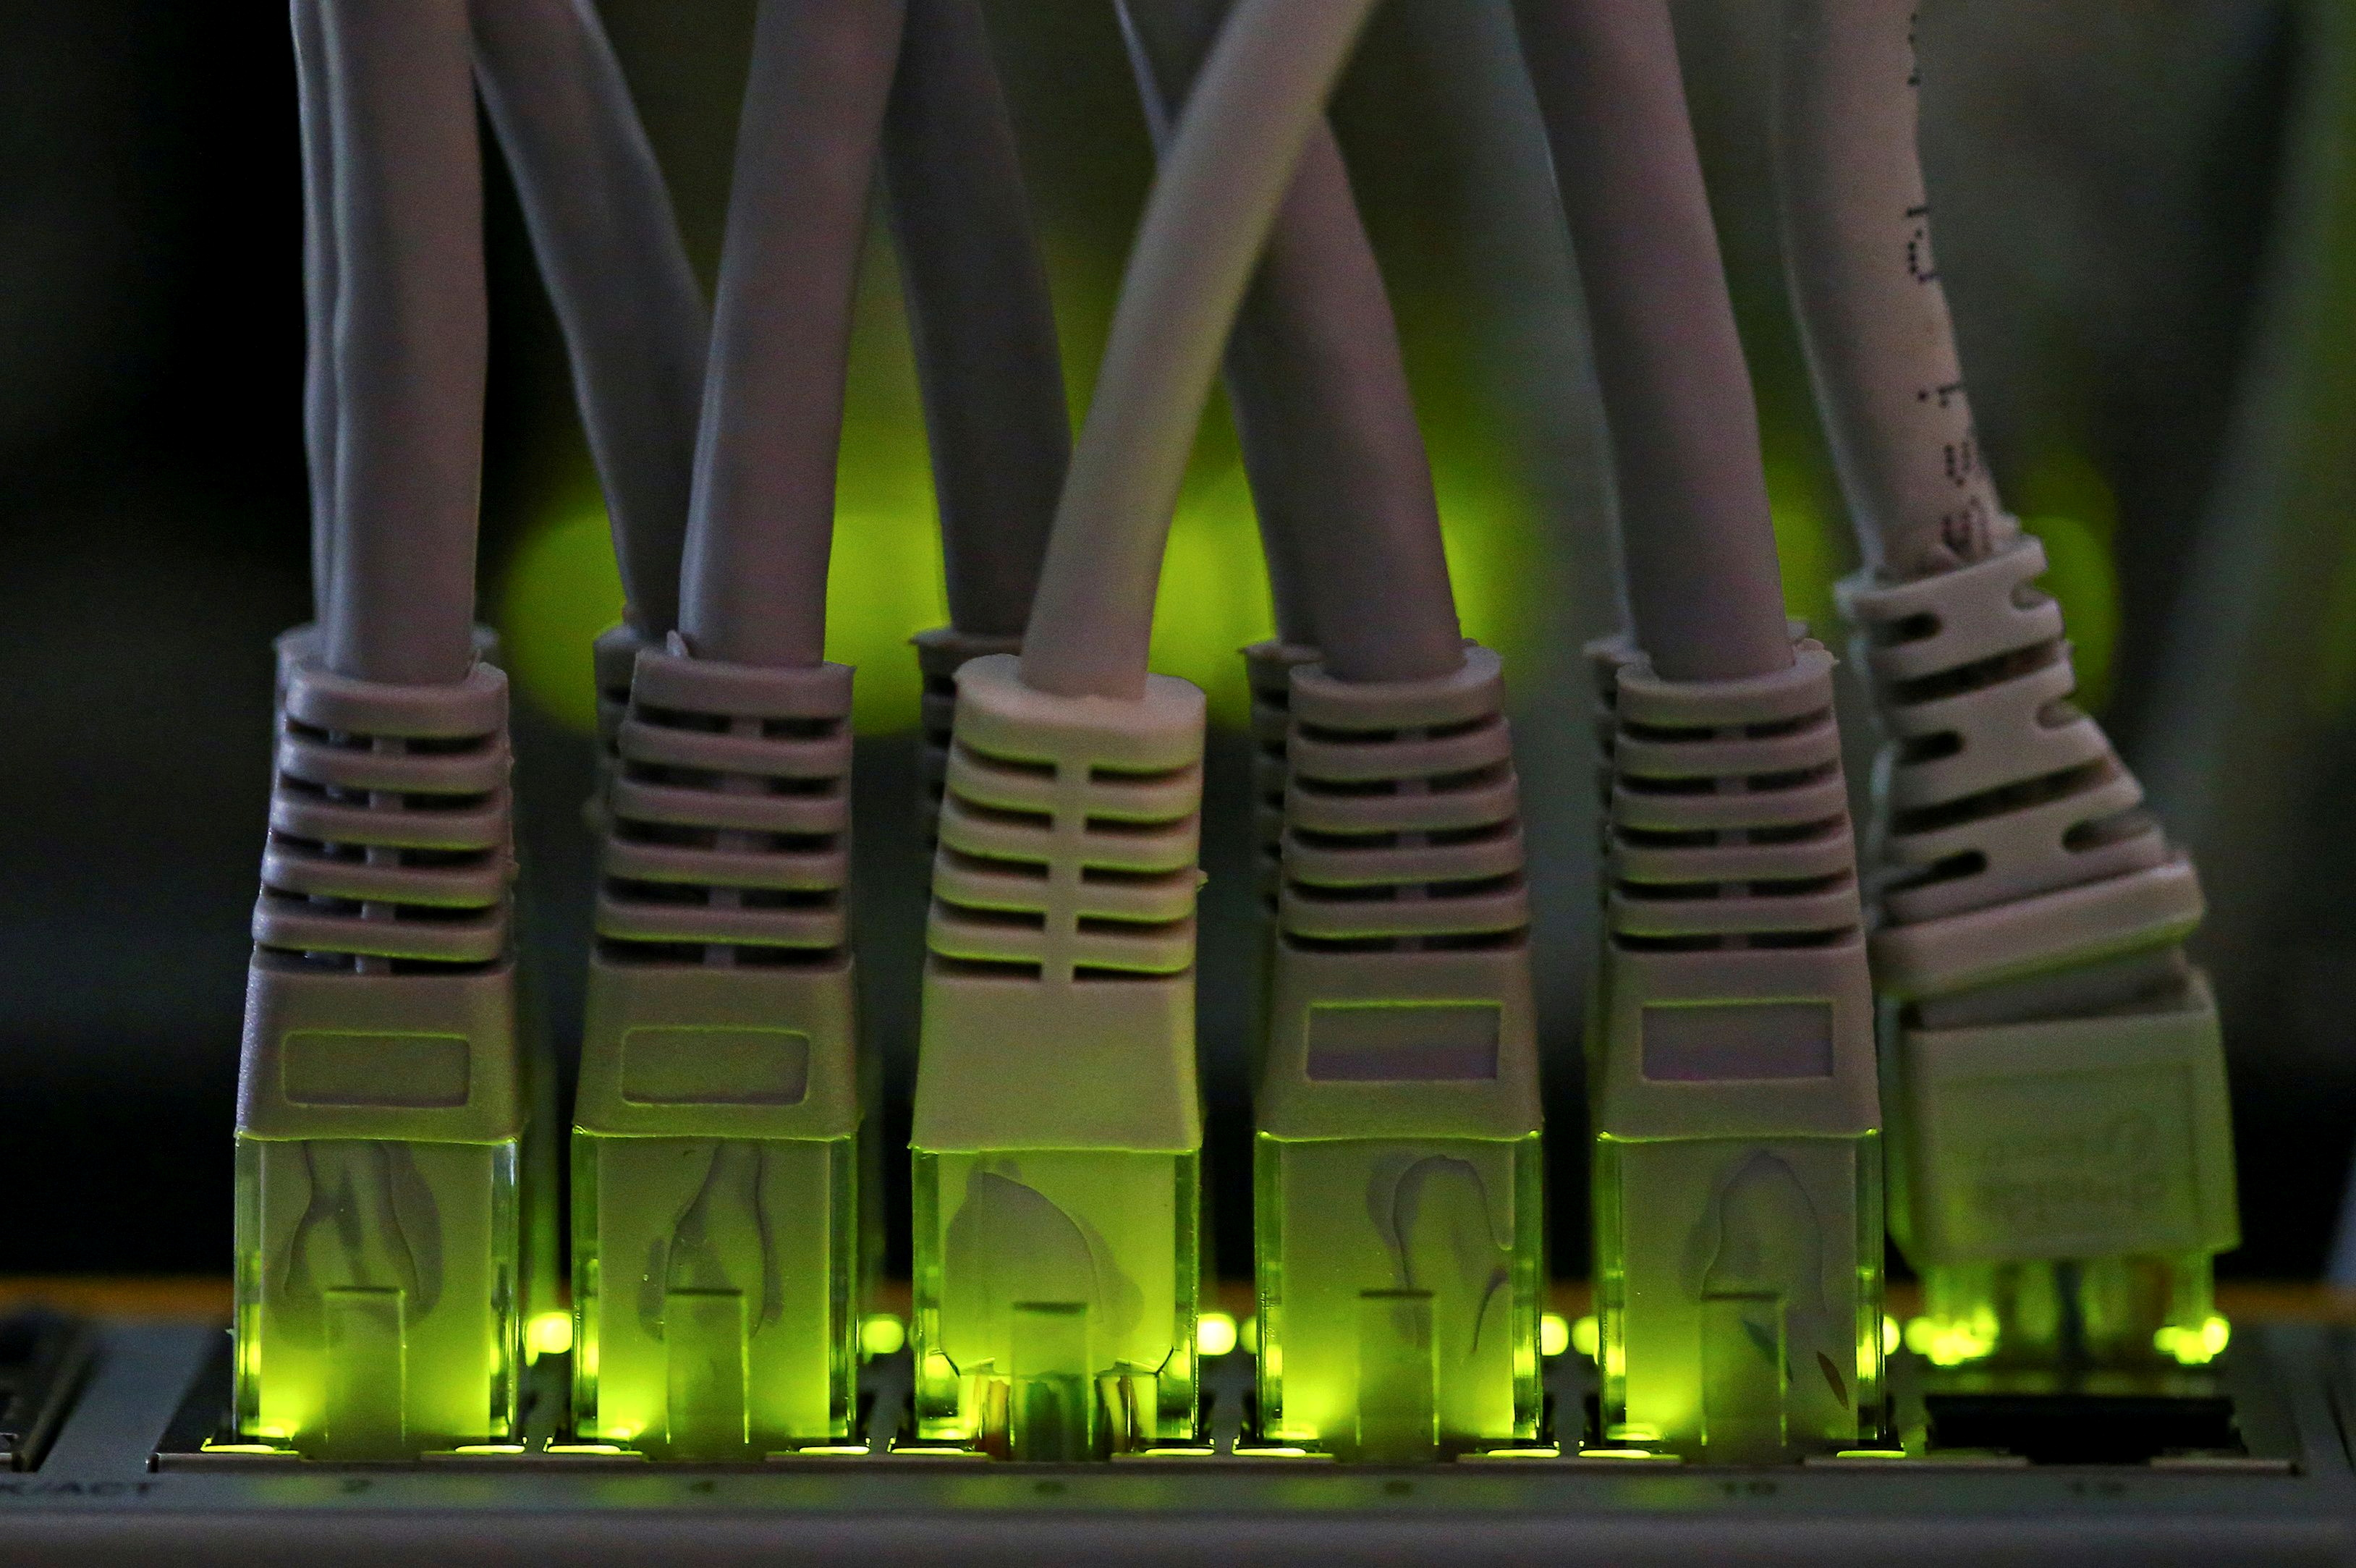 LAN network cables plugged into a Bitcoin mining computer server are pictured in Bitminer Factory in Florence, Italy, April 6, 2018. REUTERS/Alessandro Bianchi